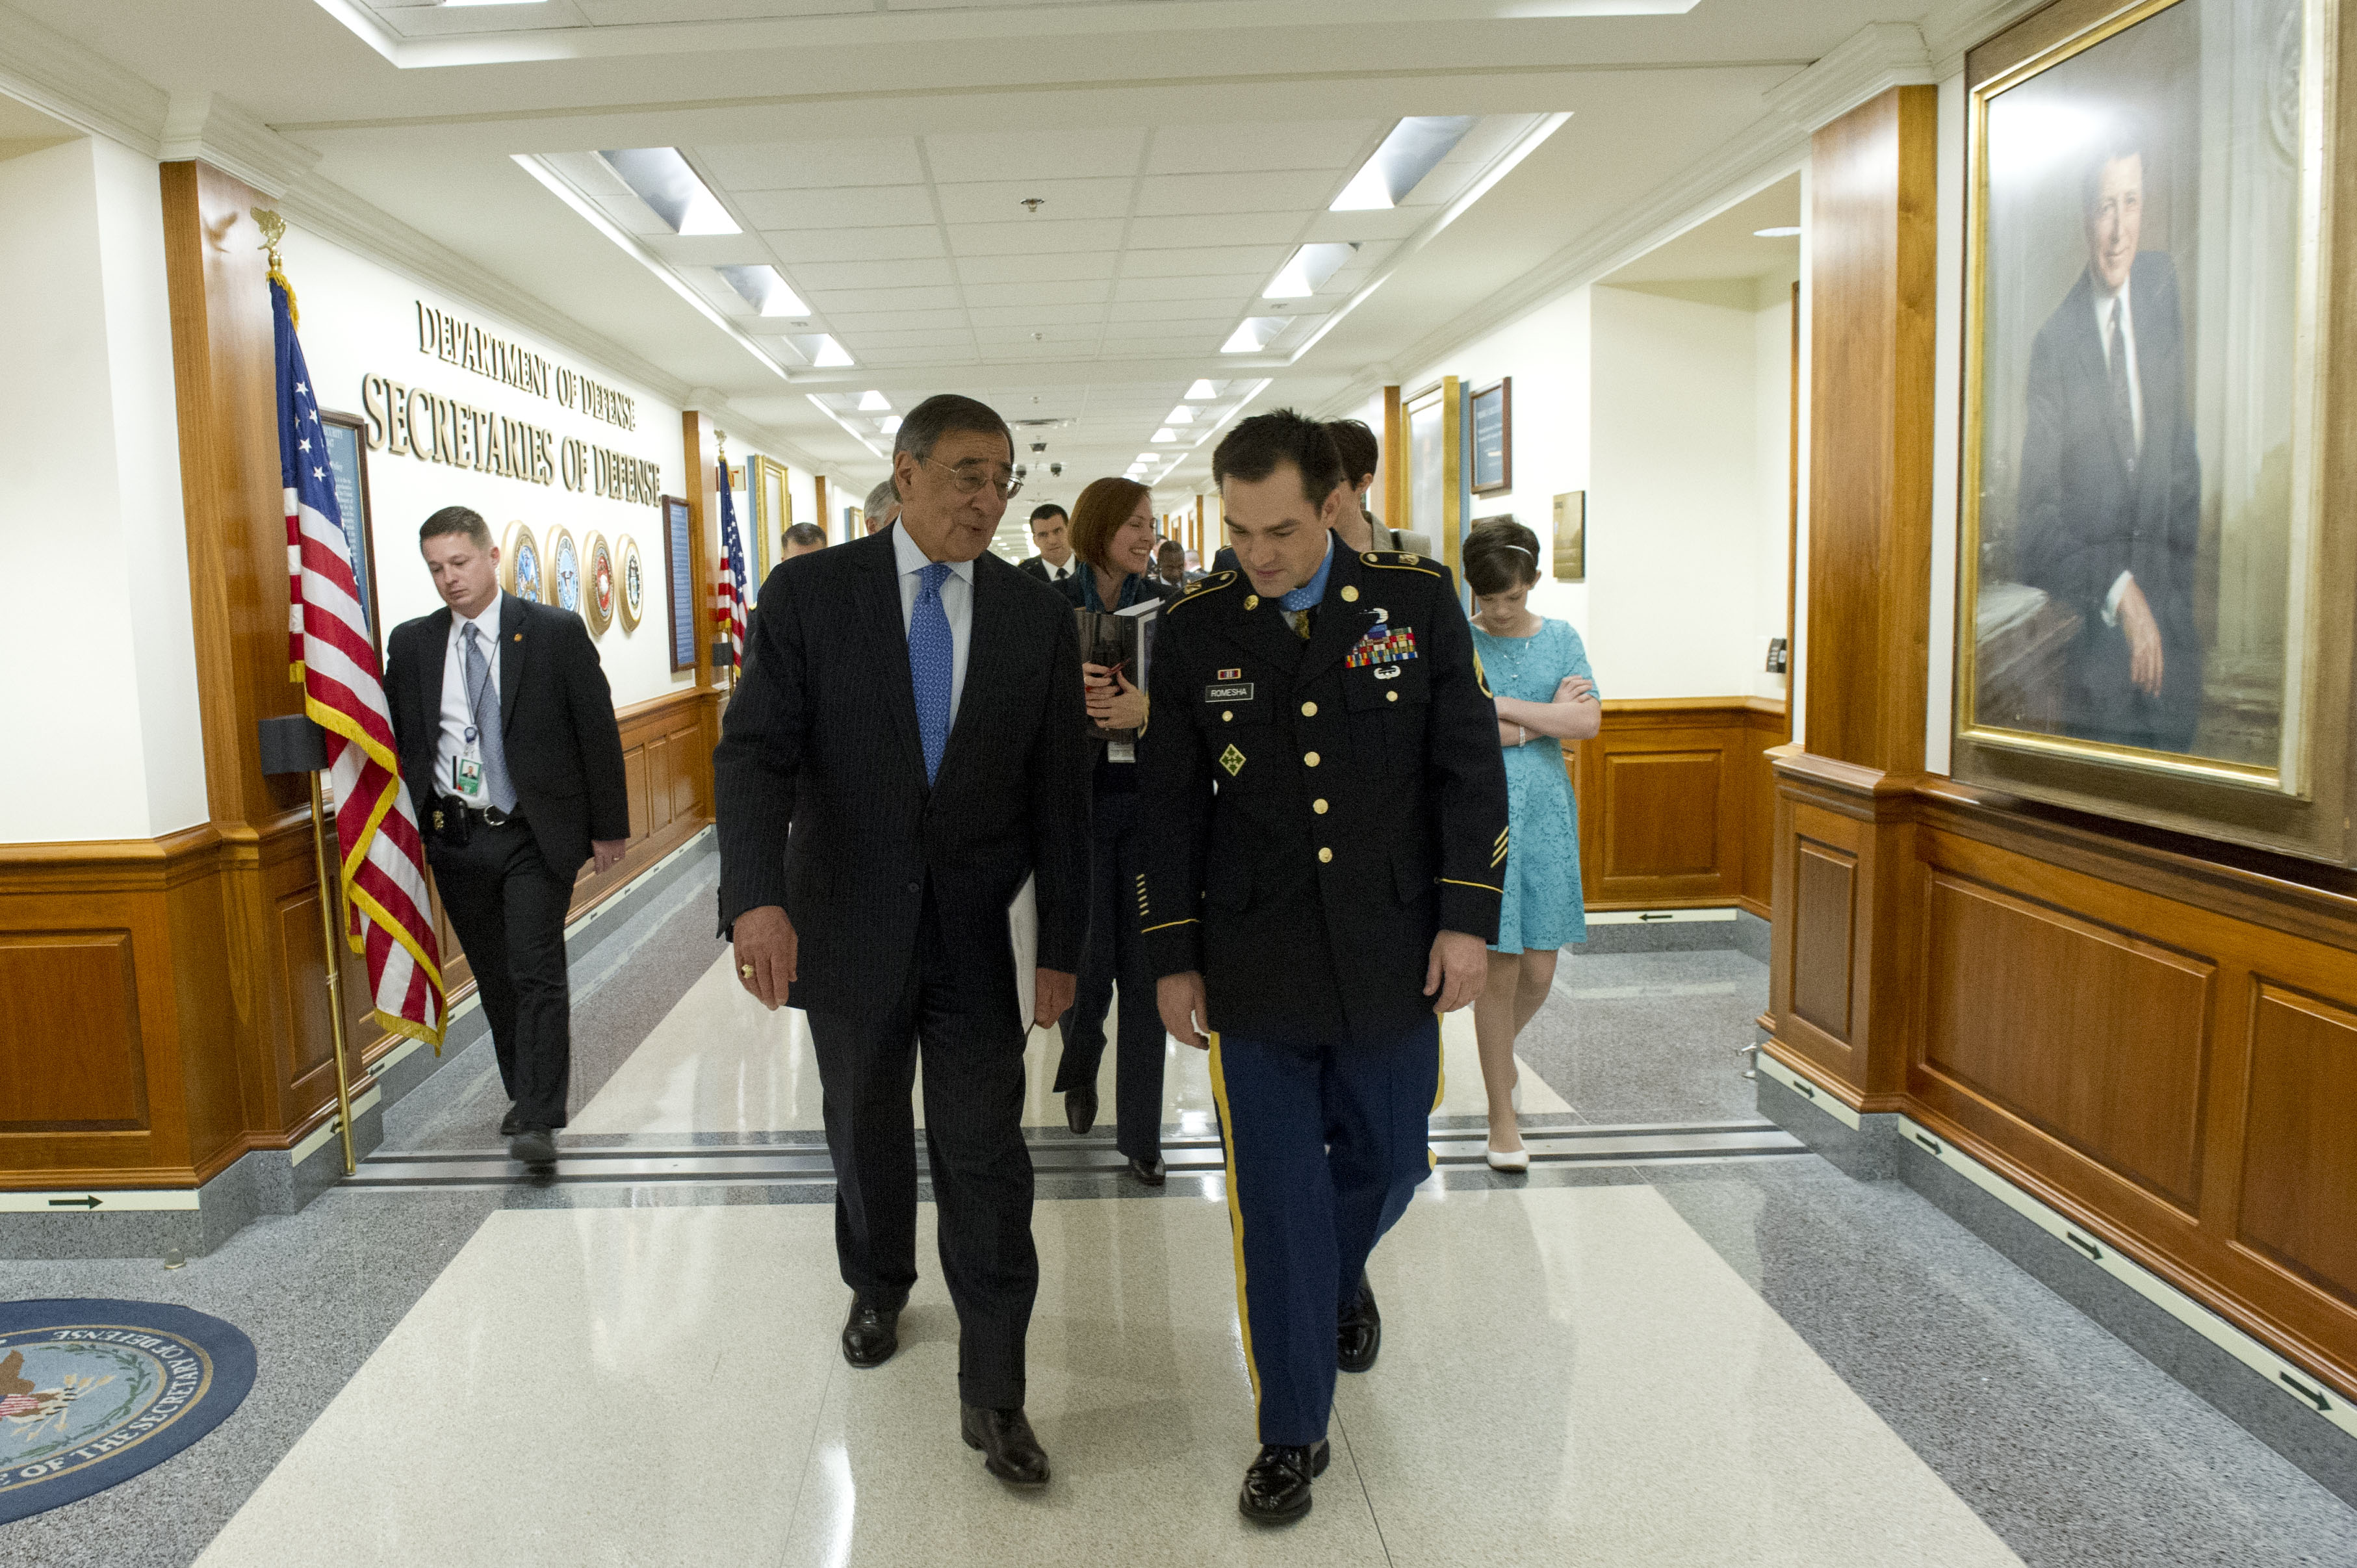 File:Secretary of Defense Leon E. Panetta walks through the hallways of the Pentagon with Army ...